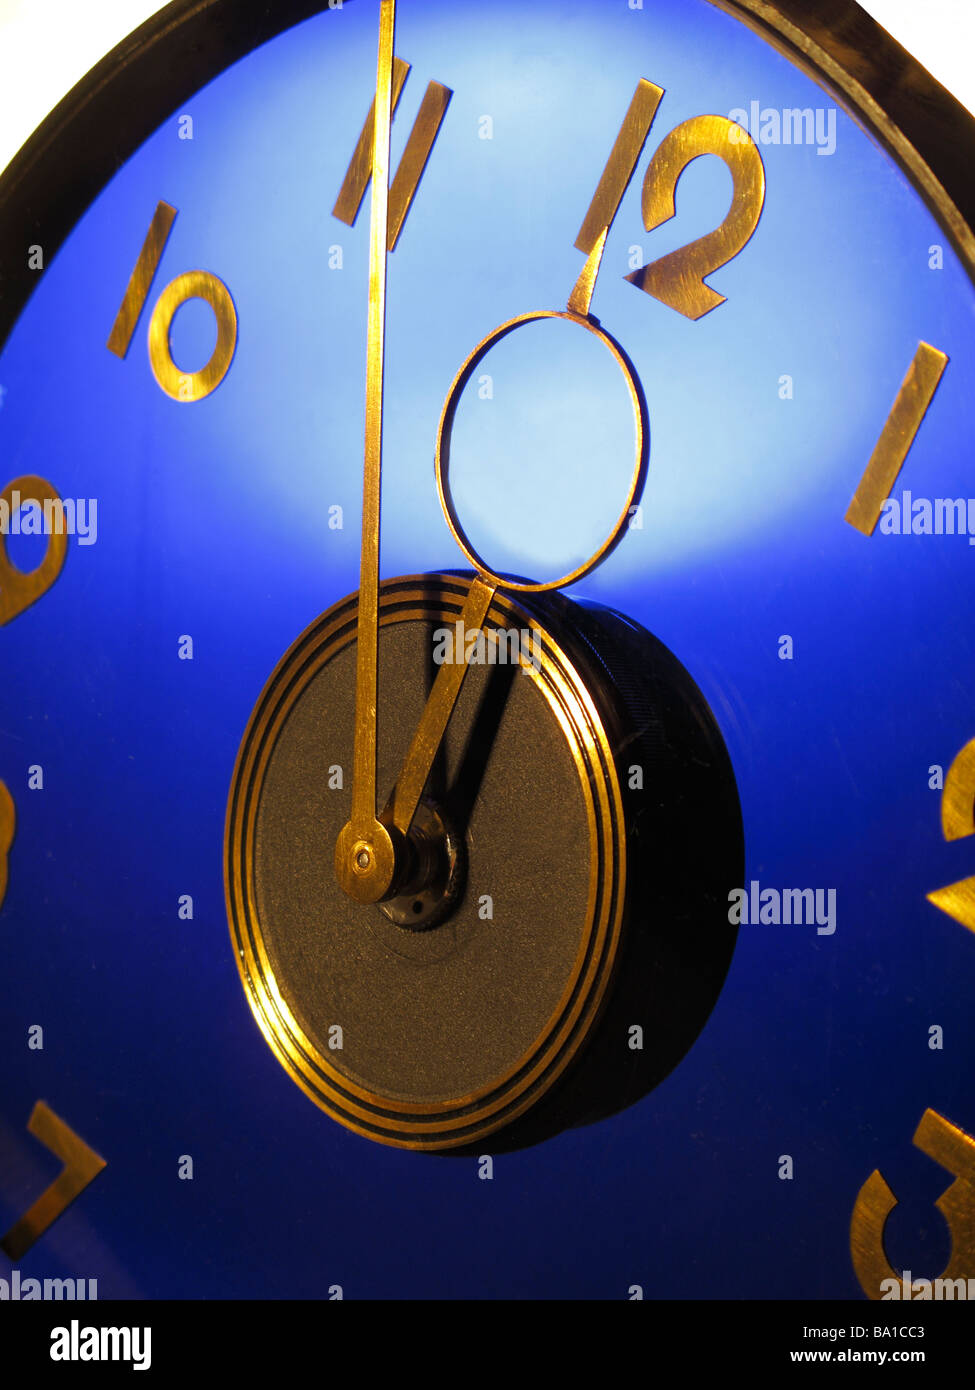 Pointer five manage detail admission one clock twelve symbolism in copied to leg going stock exchang - Stock Image